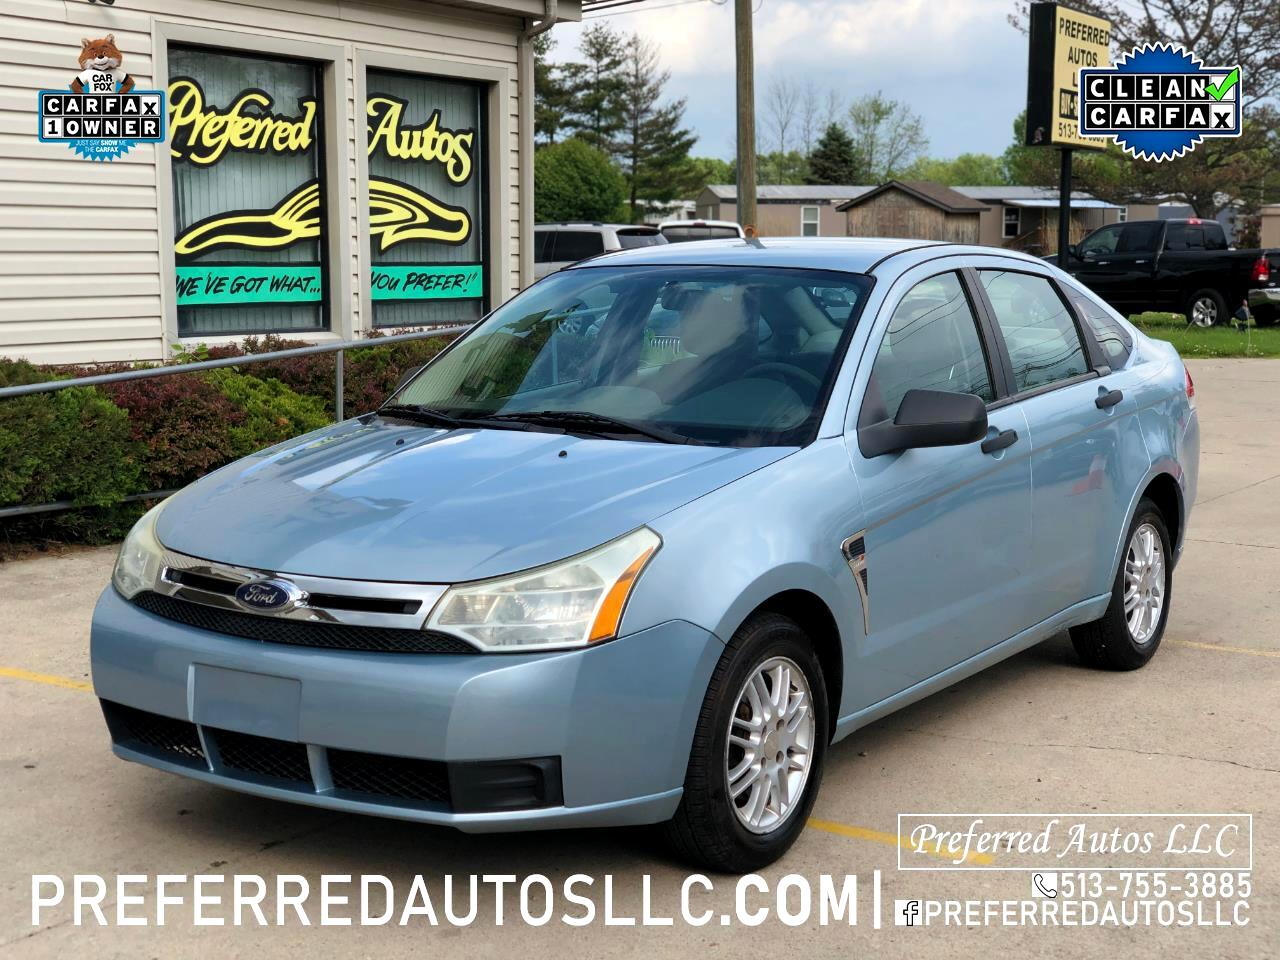 2008 Ford Focus 4dr Sdn SE